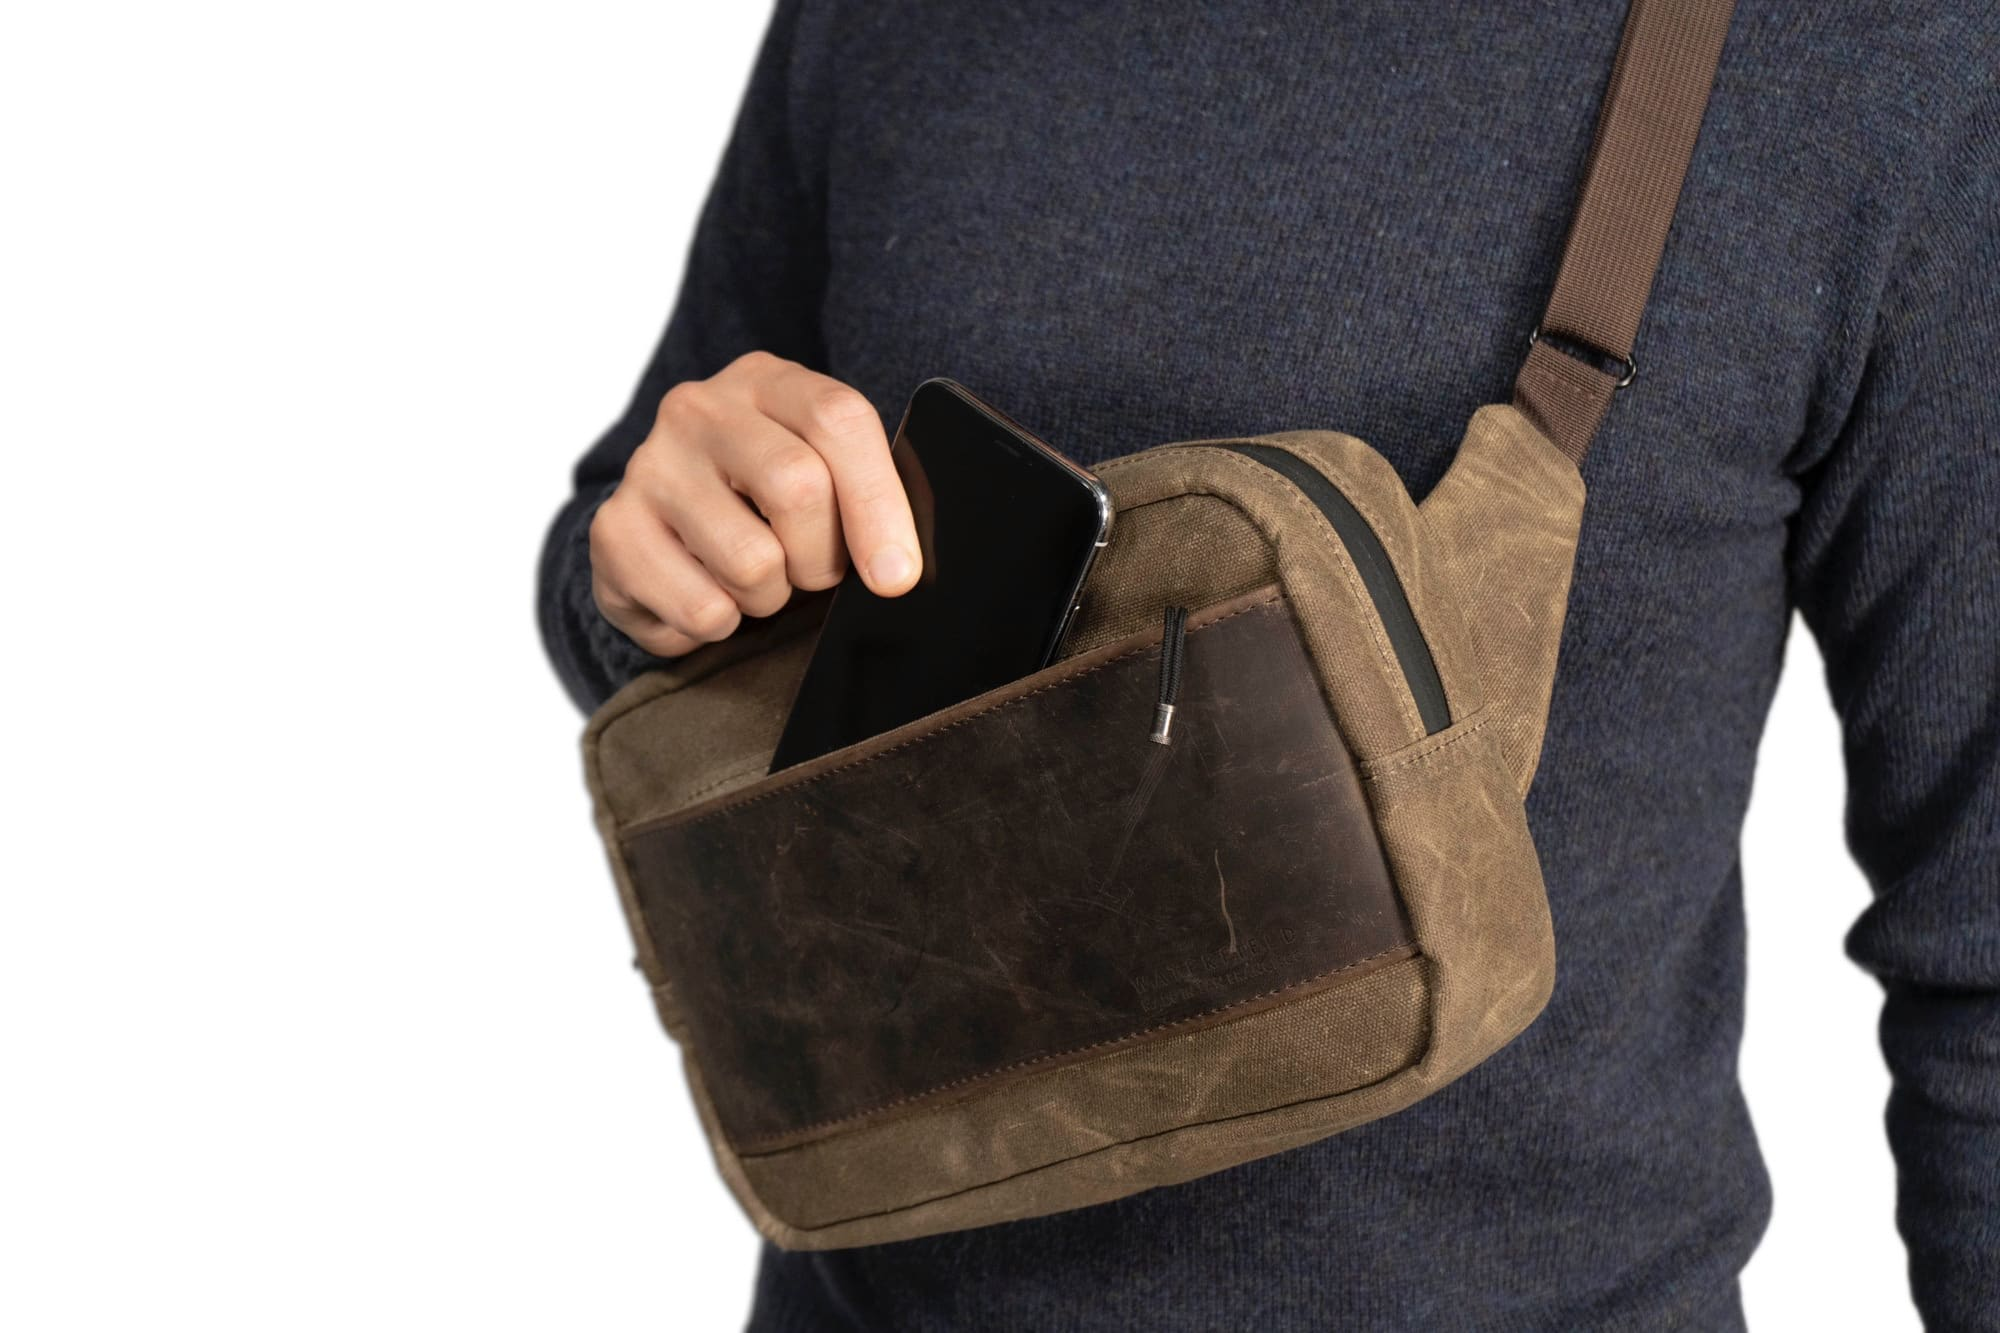 There's even a spot in the WaterField Sutter Sling Pouch for your iPhone.